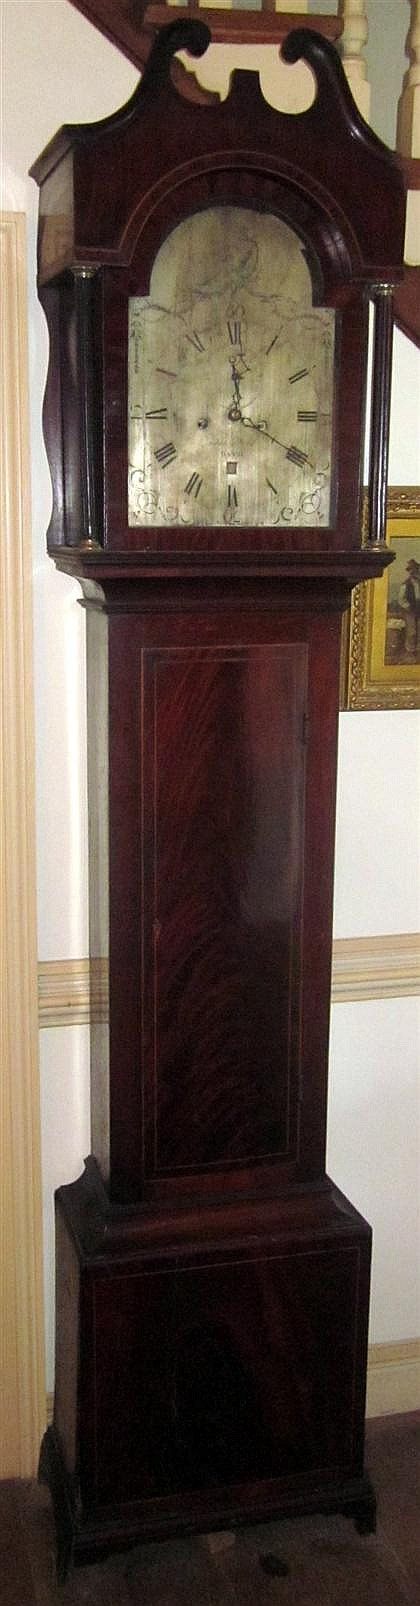 George III mahogany tall case clock, thomas field, bath, late 18th century, The steel face engraved